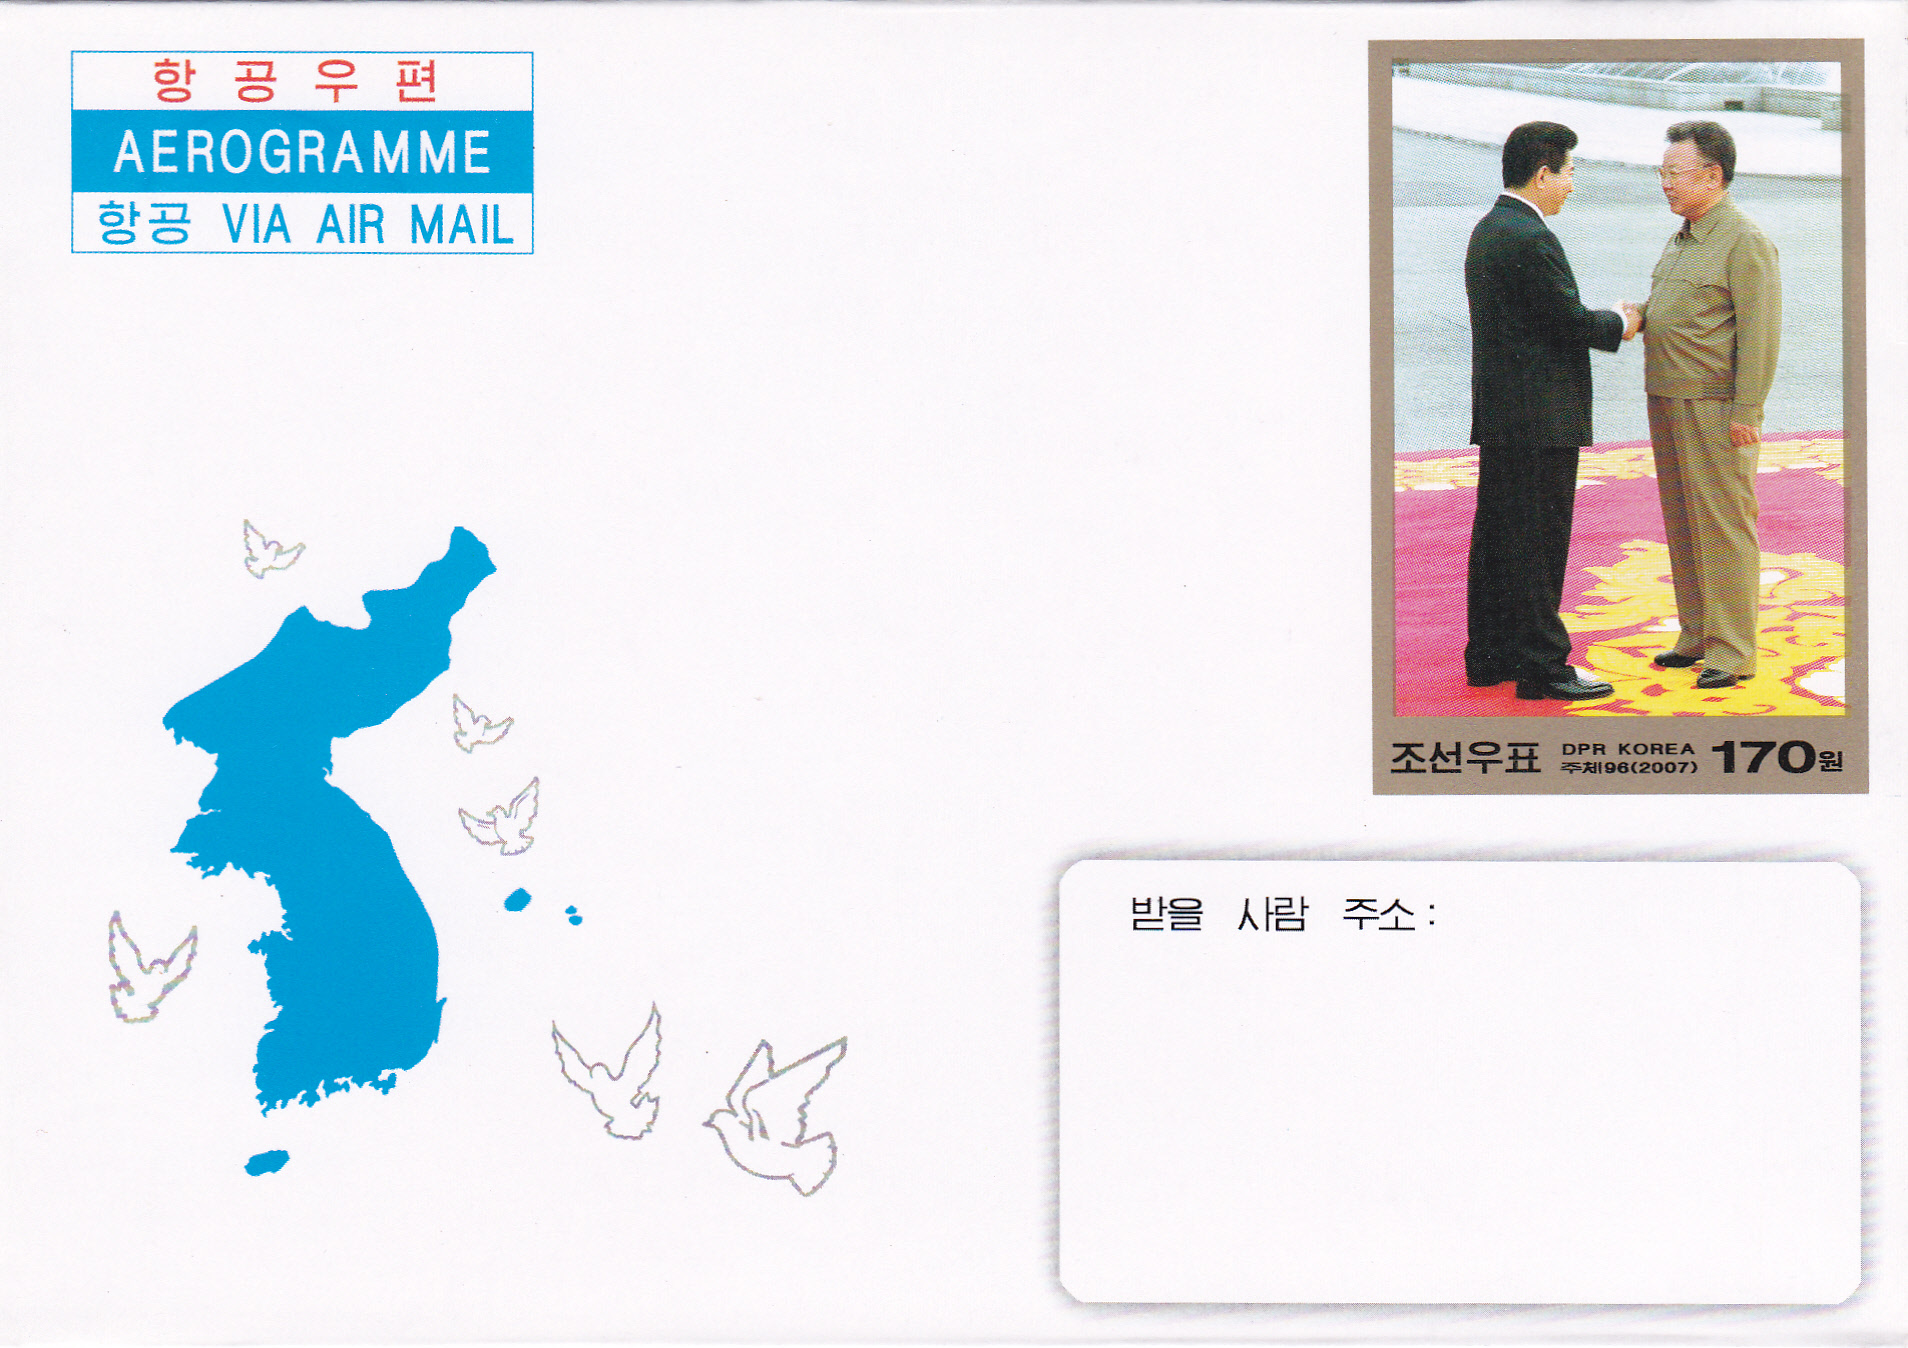 L9604, Korea Summit Meeting Aerogramme, Korean Map 2005